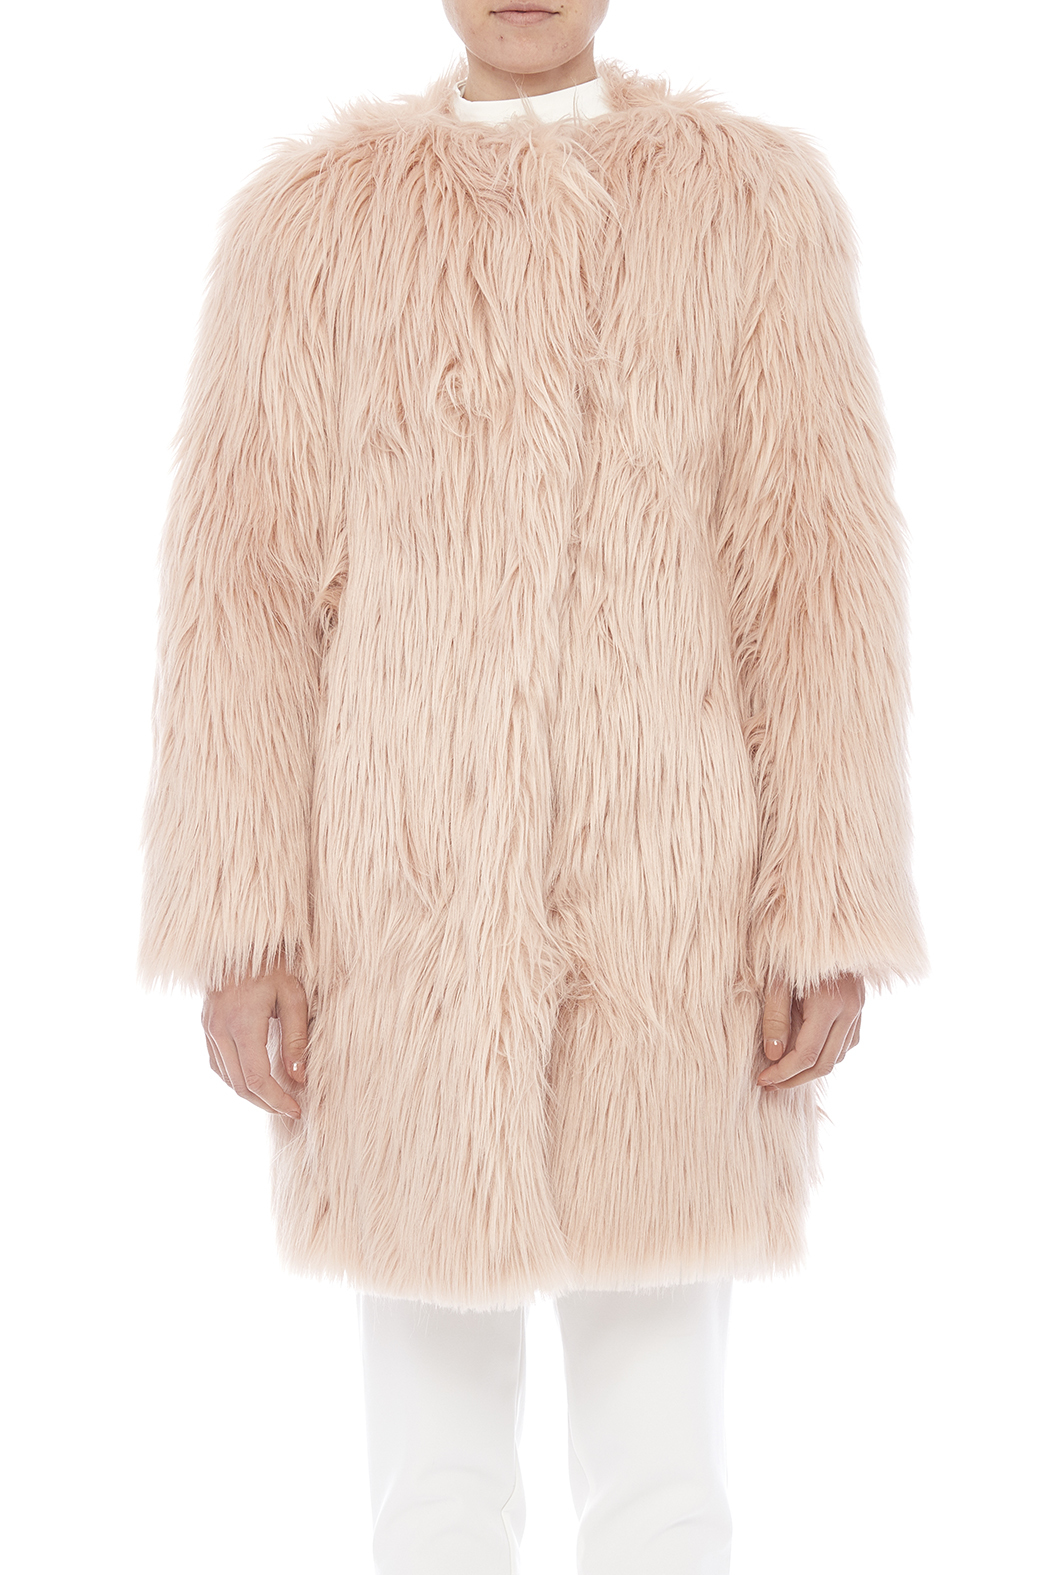 Pinkyotto Hairy Jacket from Nolita — Shoptiques